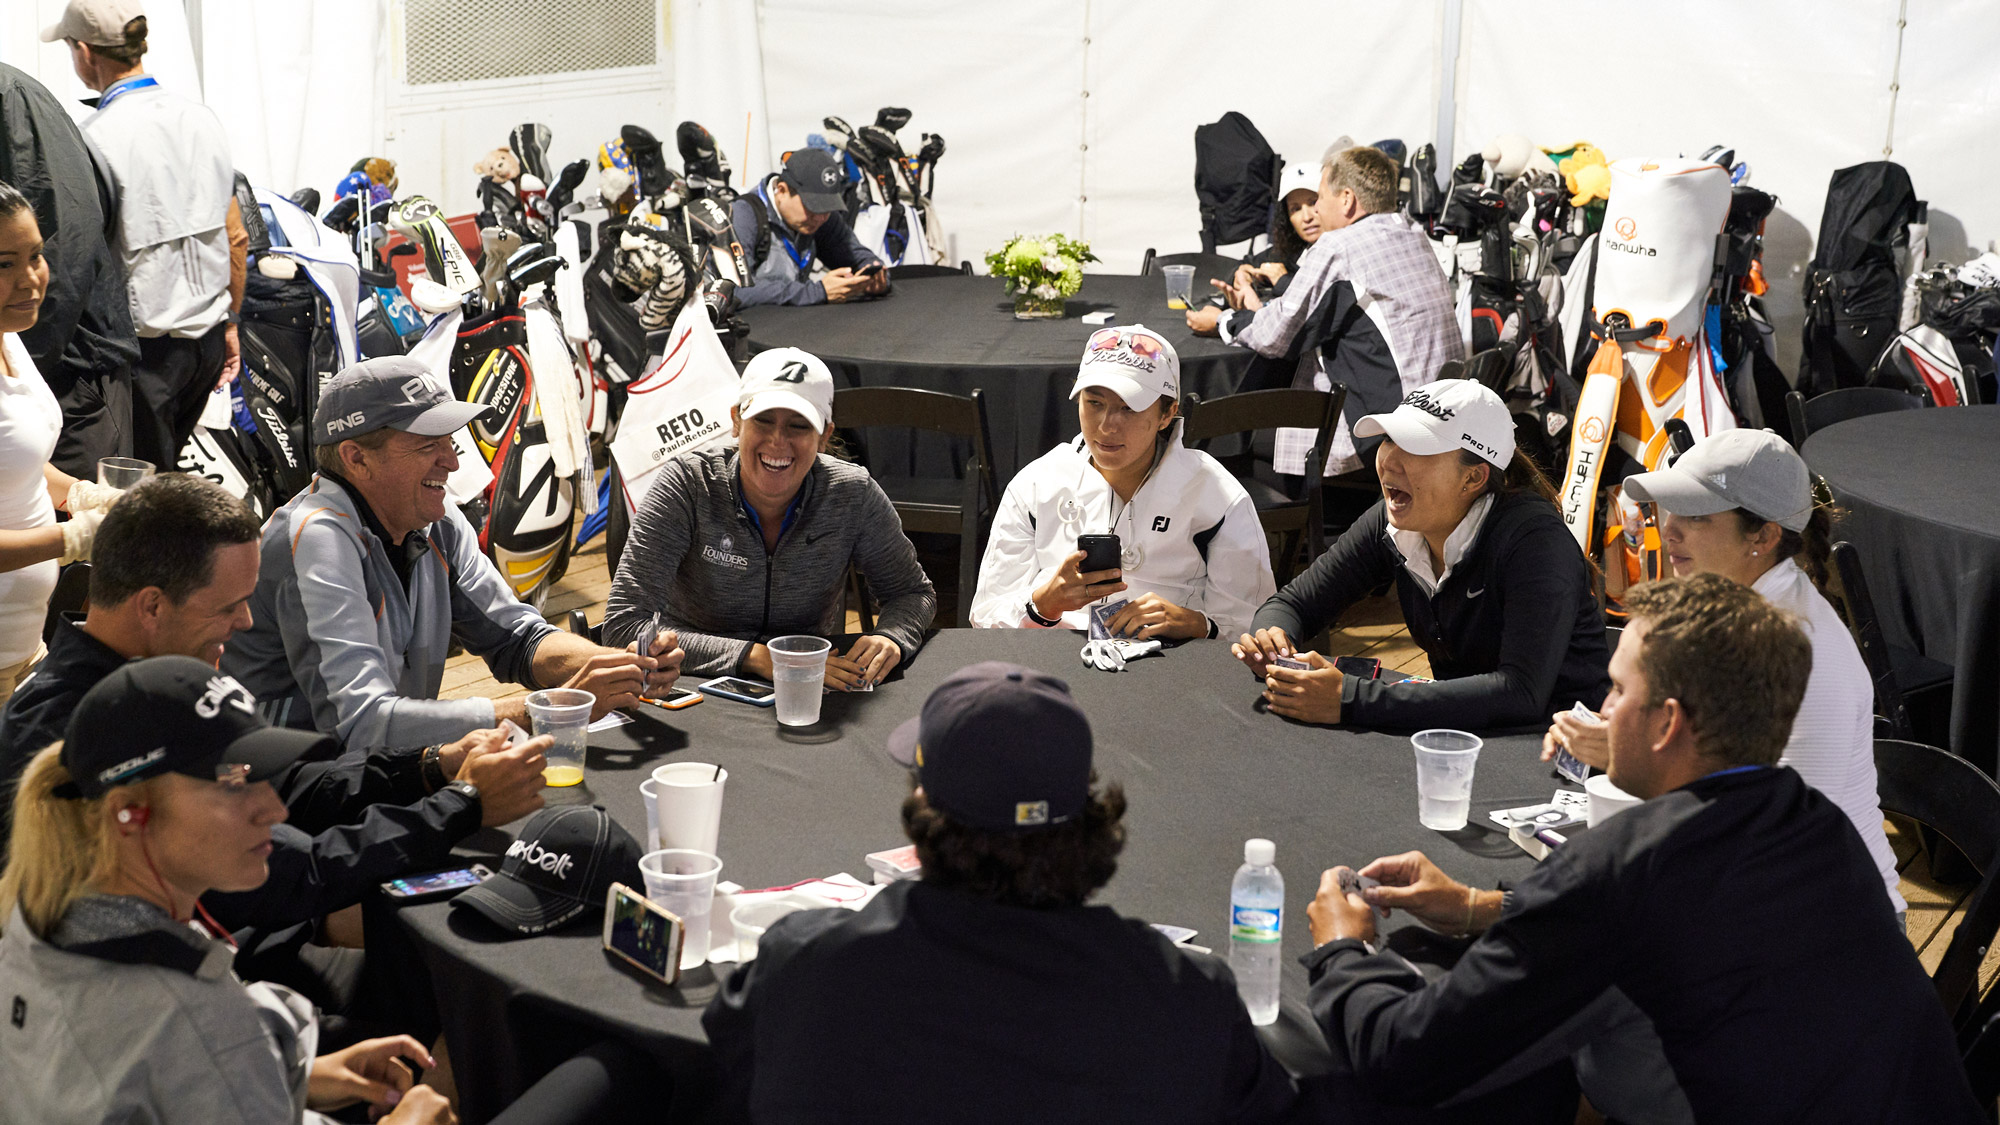 Players Hang Out During Thursday's Delay at the VOA LPGA Texas Classic